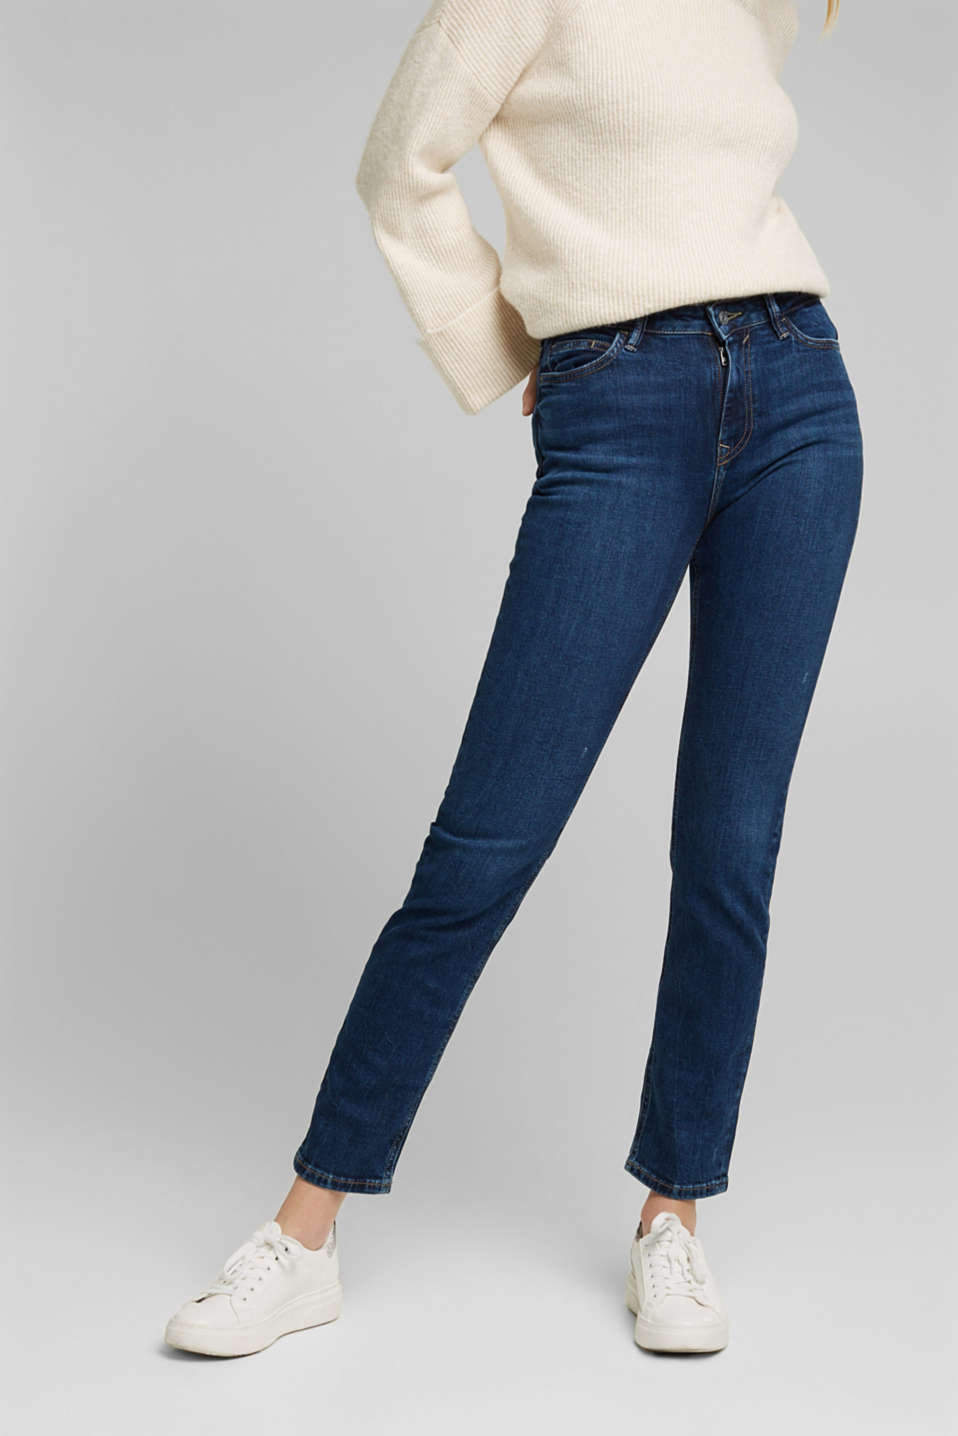 Esprit - TENCEL™ jeans with organic cotton